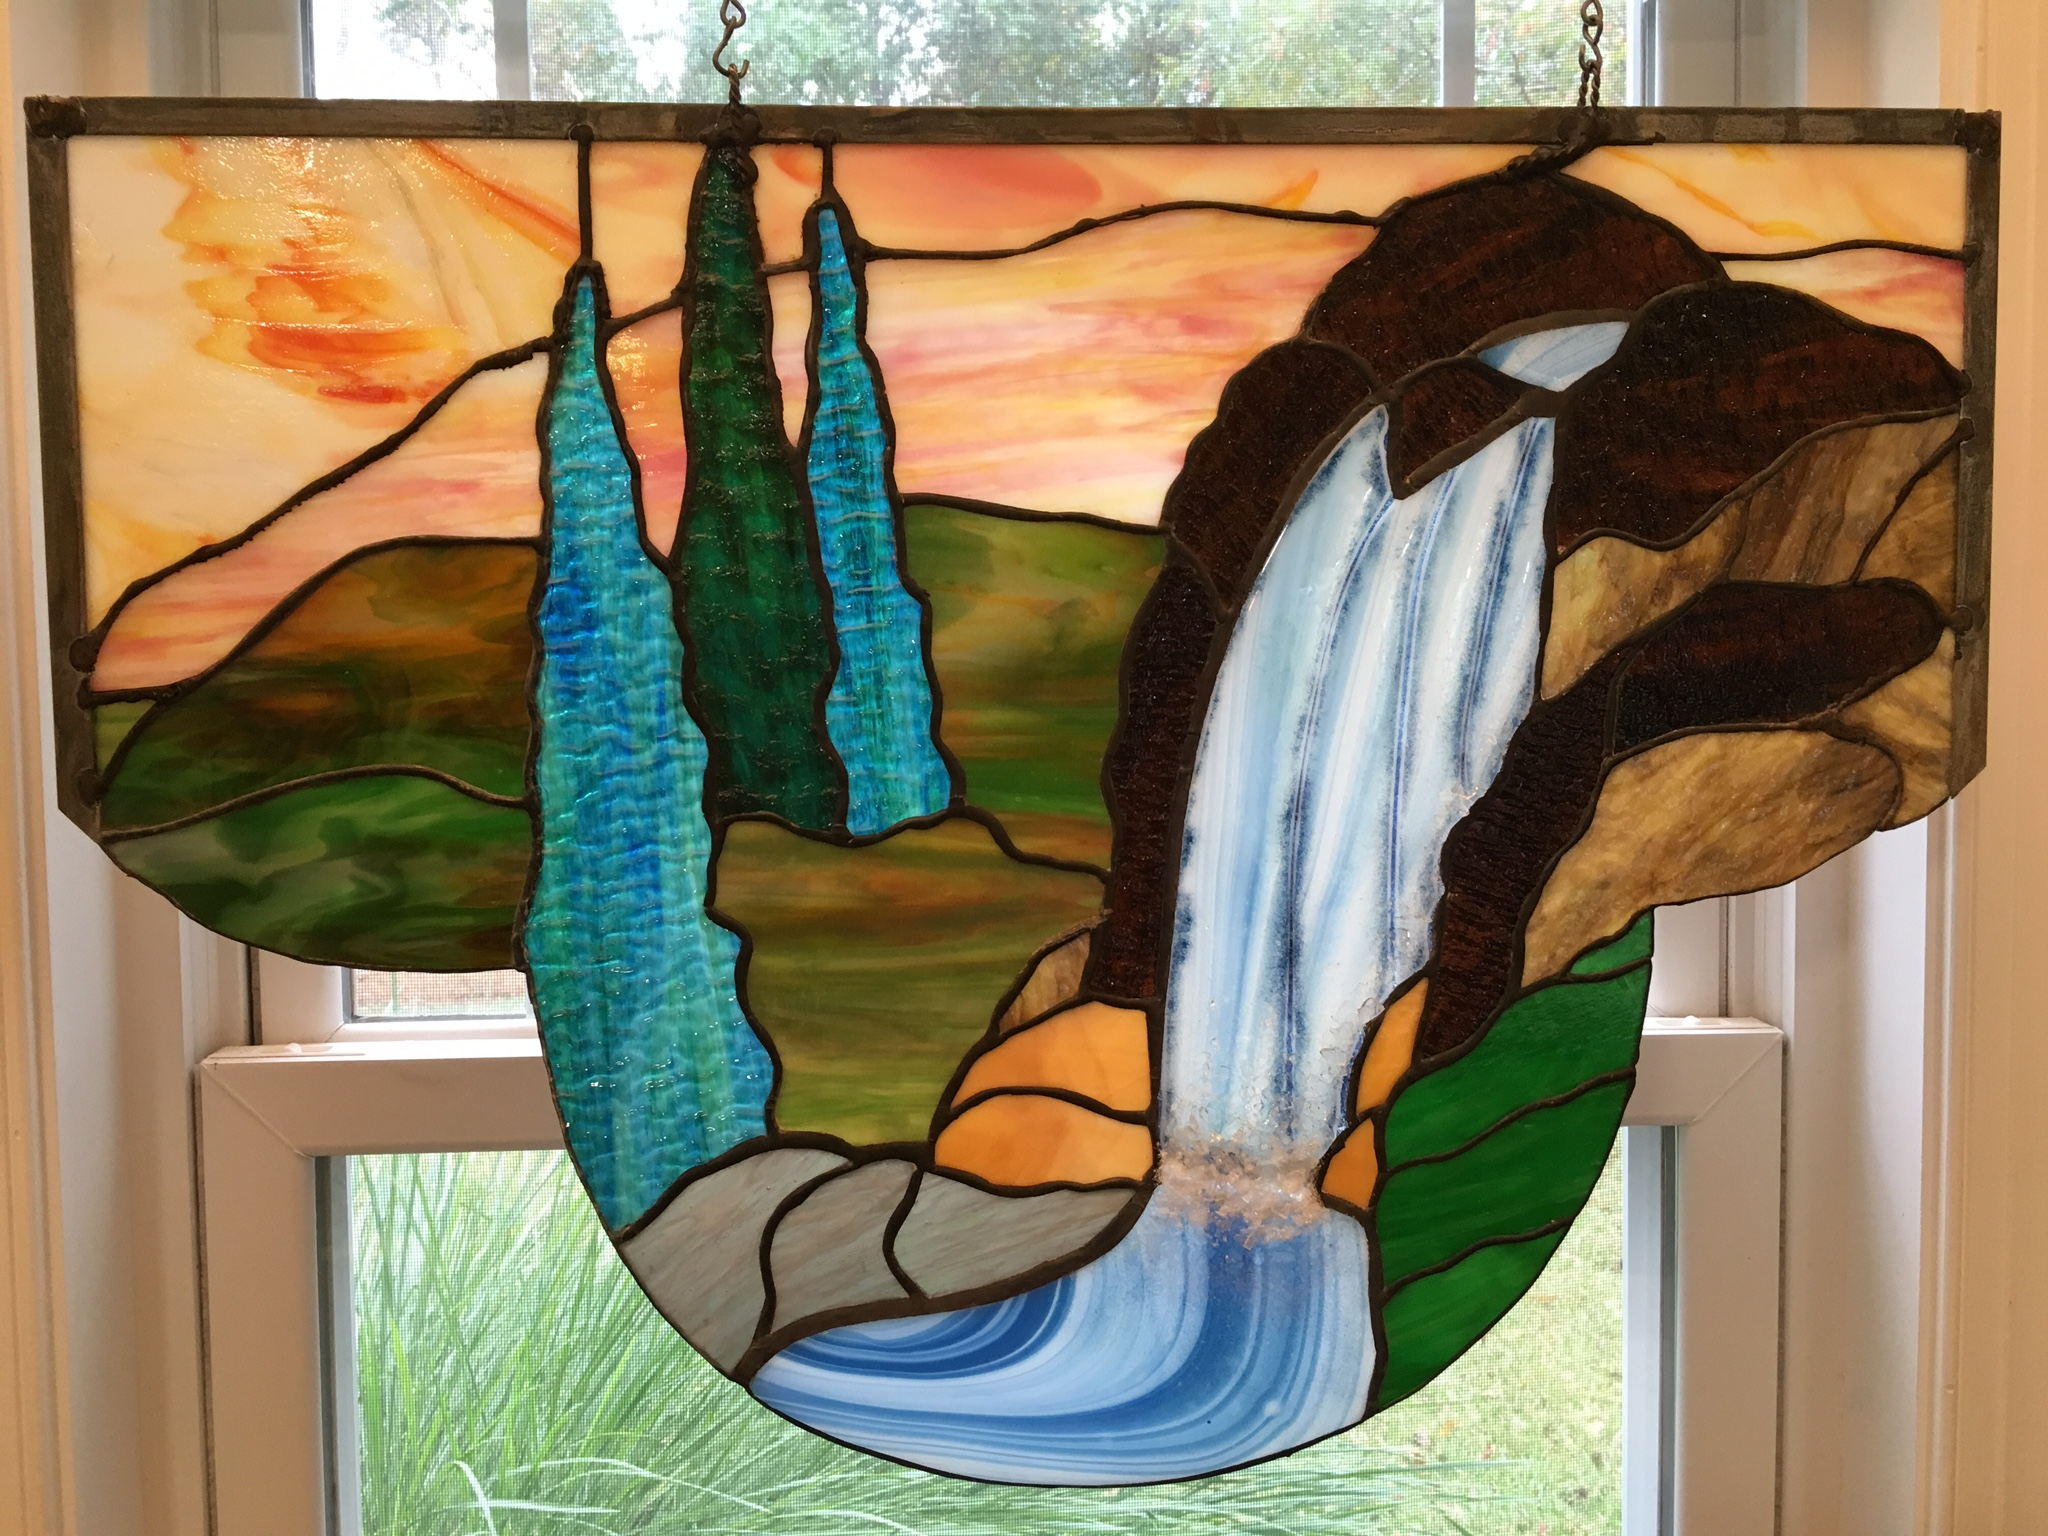 Waterfall stained glass